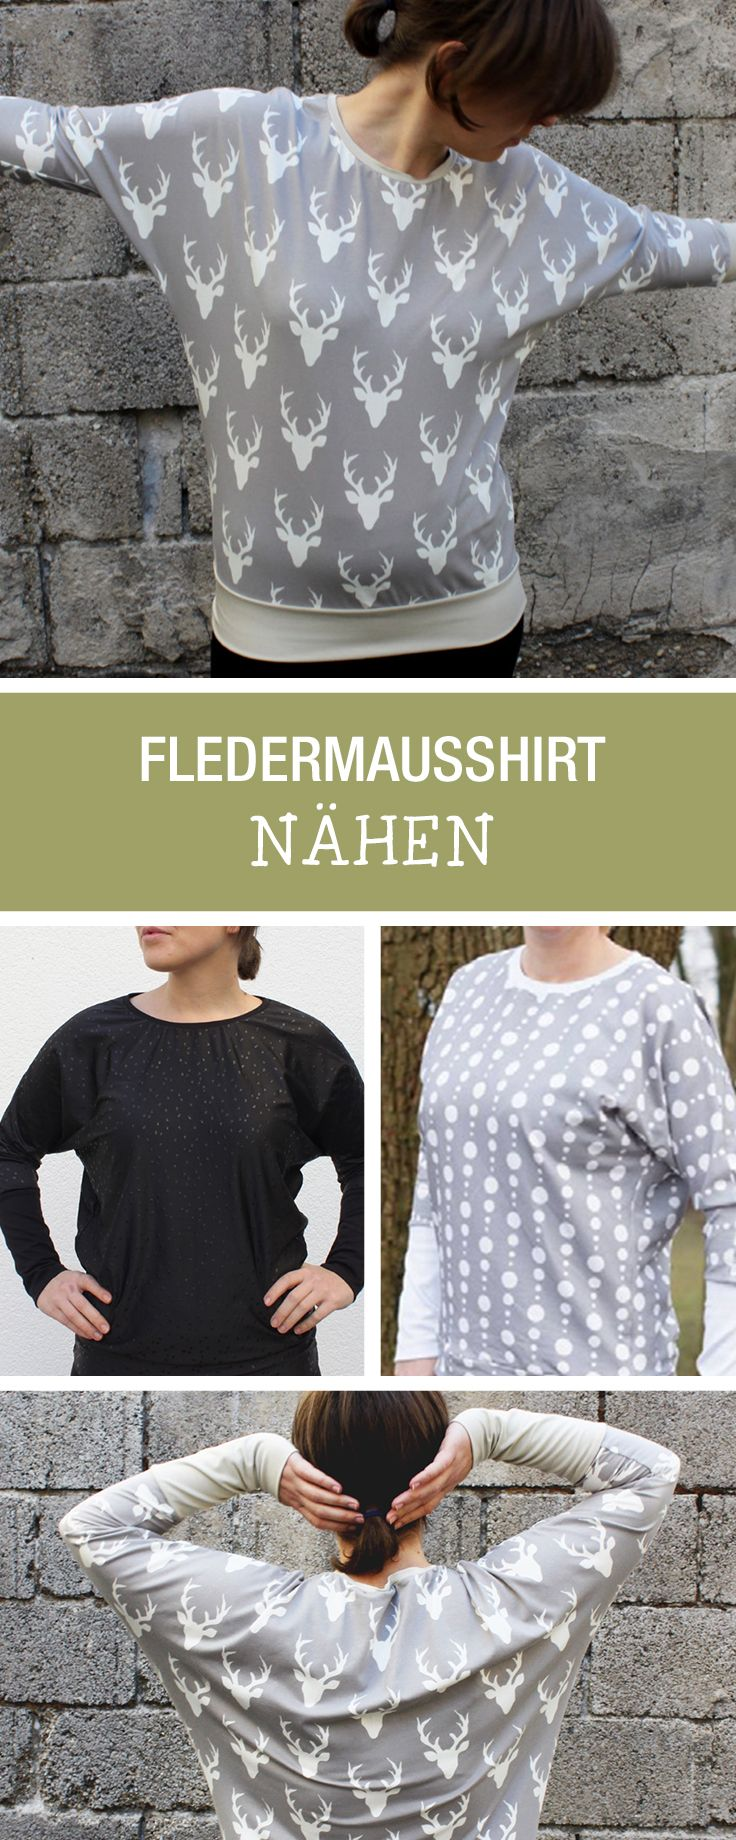 Nähanleitung für einen lässigen Pullover mit Fledermausärmeln / sewing tutorial for a casual shirt with batwing sleeves via DaWanda.com